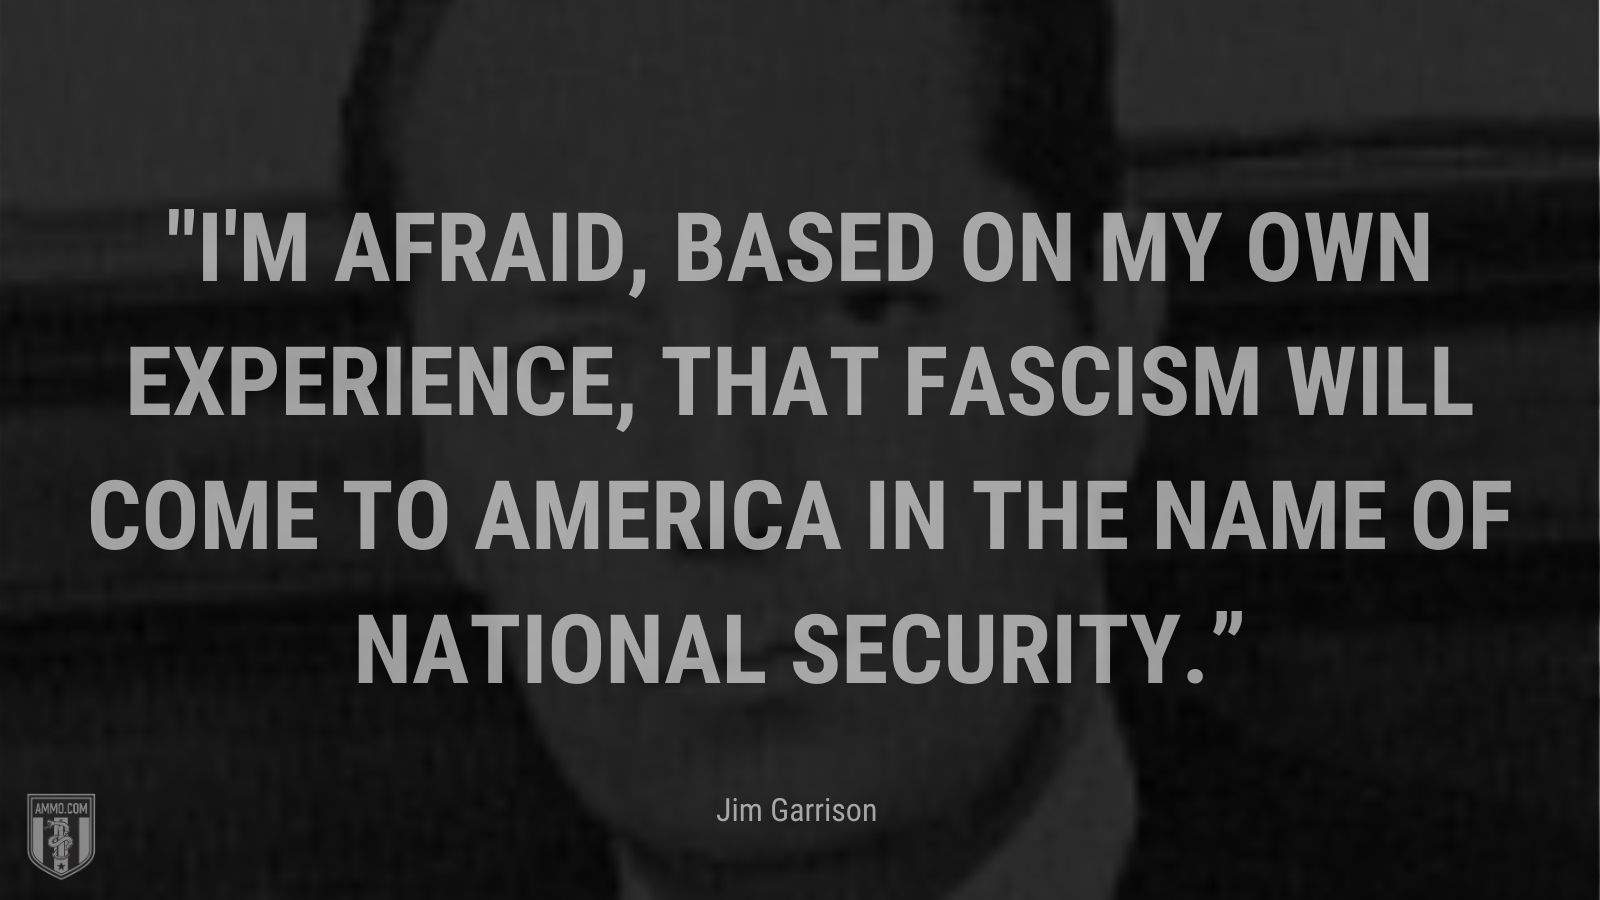 """""""I'm afraid, based on my own experience, that fascism will come to America in the name of national security."""" - Jim Garrison"""